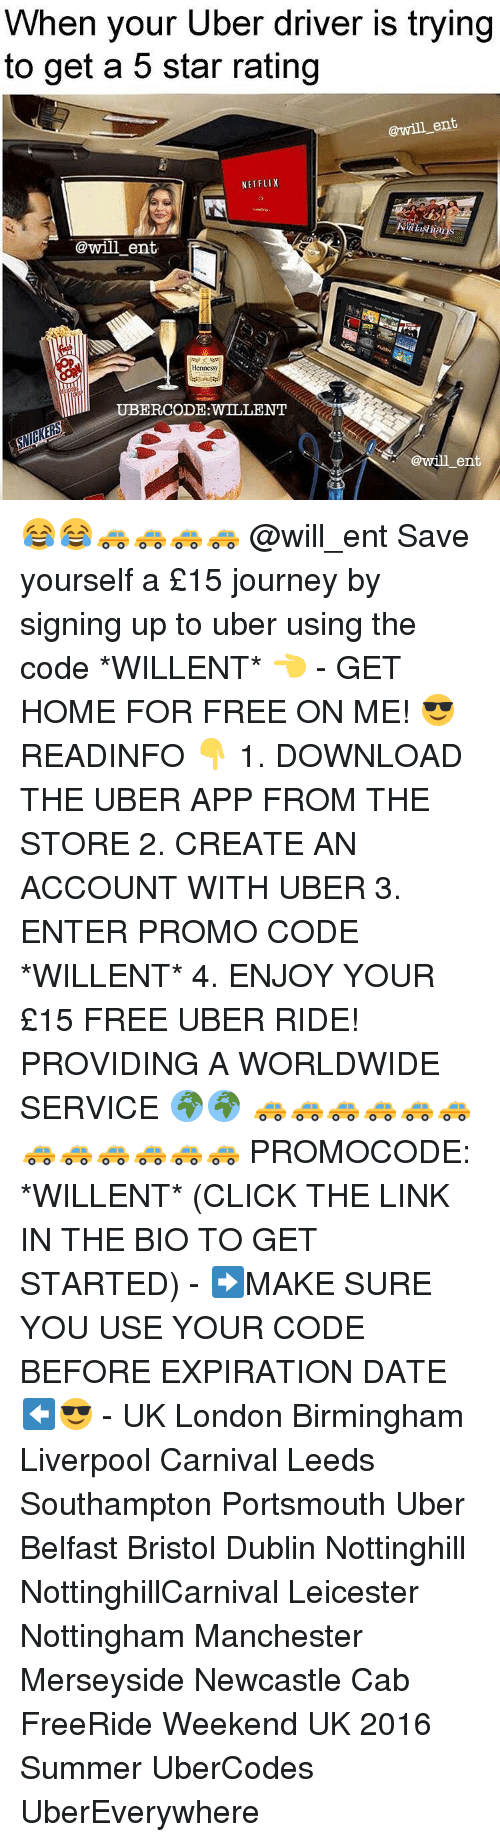 Rateing: When your Uber driver is trying  to get a 5 star rating  @will ent  NETFLIX  @will ent.  Hennessy  @will ent 😂😂🚕🚕🚕🚕 @will_ent Save yourself a £15 journey by signing up to uber using the code *WILLENT* 👈 - GET HOME FOR FREE ON ME! 😎 READINFO 👇 1. DOWNLOAD THE UBER APP FROM THE STORE 2. CREATE AN ACCOUNT WITH UBER 3. ENTER PROMO CODE *WILLENT* 4. ENJOY YOUR £15 FREE UBER RIDE! PROVIDING A WORLDWIDE SERVICE 🌍🌍 🚕🚕🚕🚕🚕🚕🚕🚕🚕🚕🚕🚕 PROMOCODE: *WILLENT* (CLICK THE LINK IN THE BIO TO GET STARTED) - ➡️MAKE SURE YOU USE YOUR CODE BEFORE EXPIRATION DATE ⬅️😎 - UK London Birmingham Liverpool Carnival Leeds Southampton Portsmouth Uber Belfast Bristol Dublin Nottinghill NottinghillCarnival Leicester Nottingham Manchester Merseyside Newcastle Cab FreeRide Weekend UK 2016 Summer UberCodes UberEverywhere